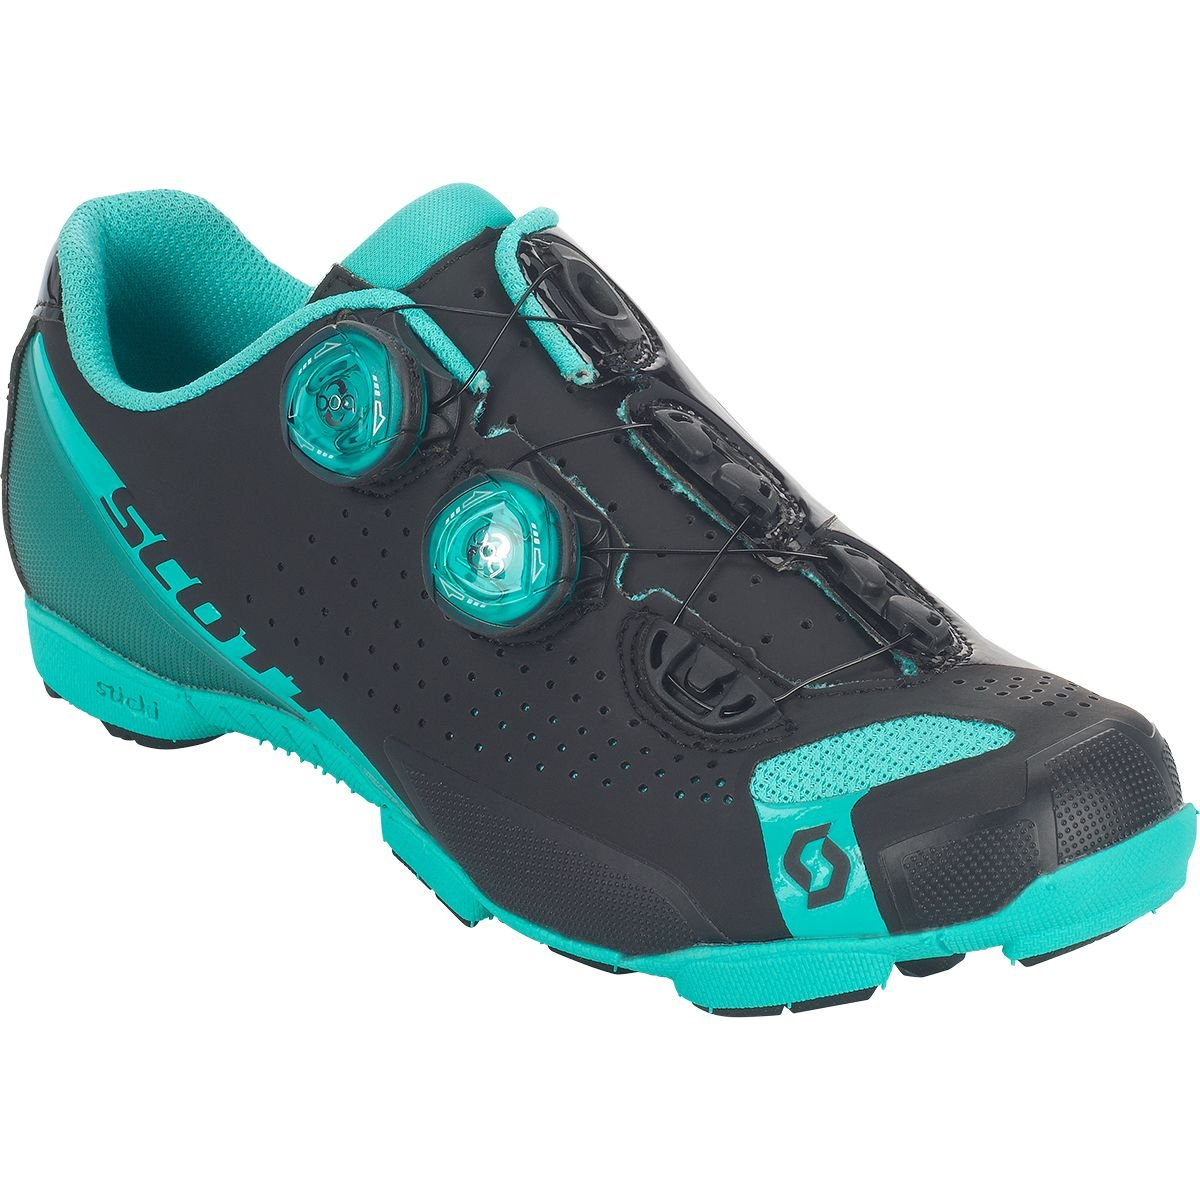 スコットMTB RC Lady Shoe – Women 's B075LWGWP1 42 M EU|Matt Black/Aqua Blue Matt Black/Aqua Blue 42 M EU